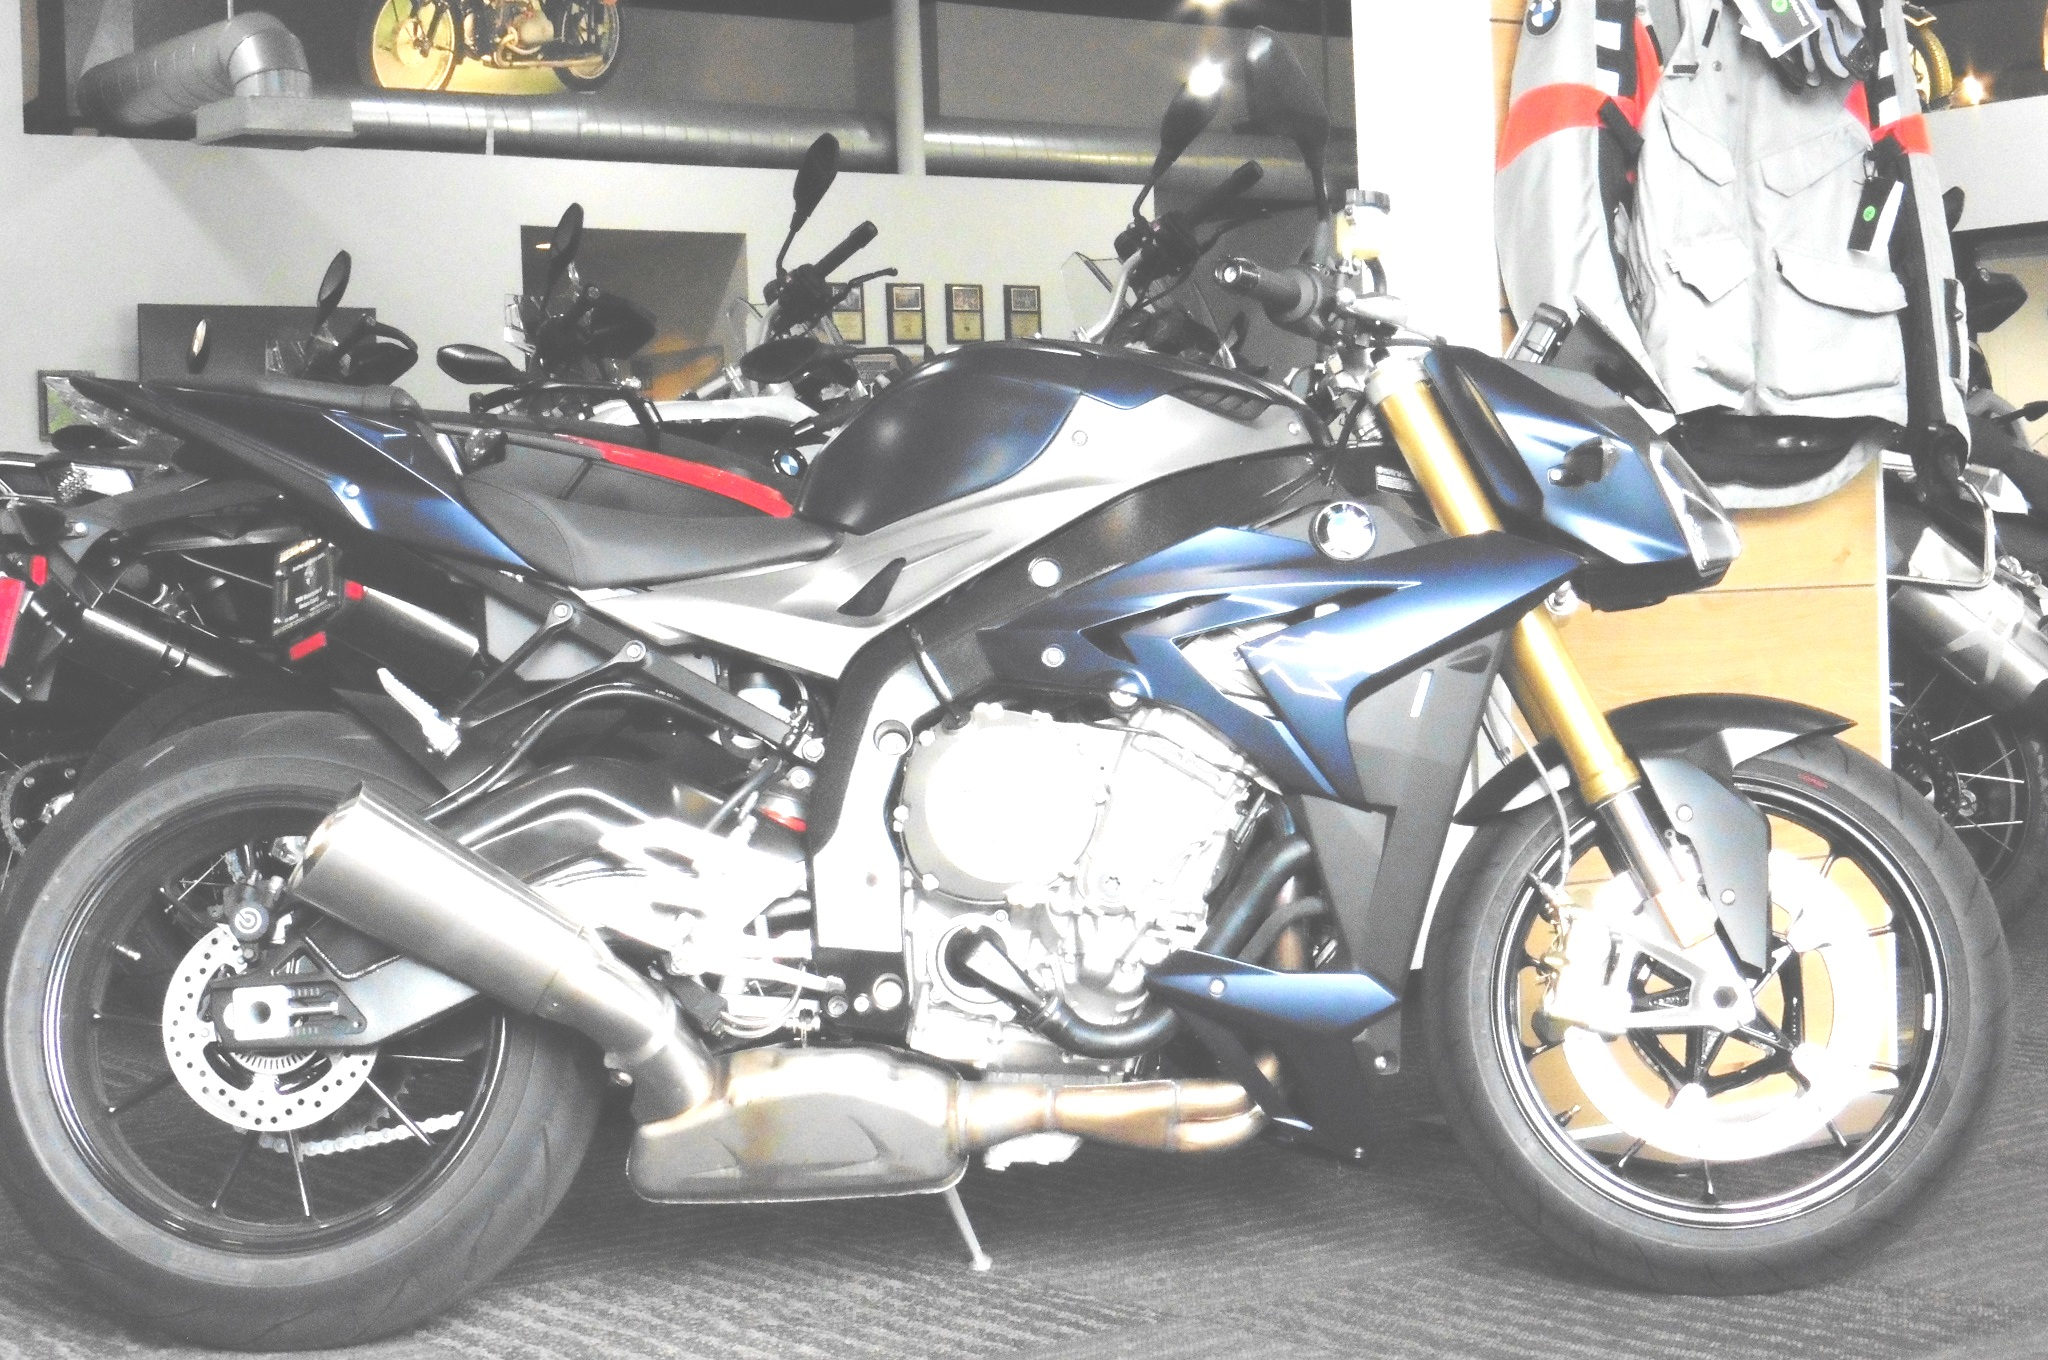 2015 BMW S 1000 RR Sportbike Motorcycle From De Pere, WI